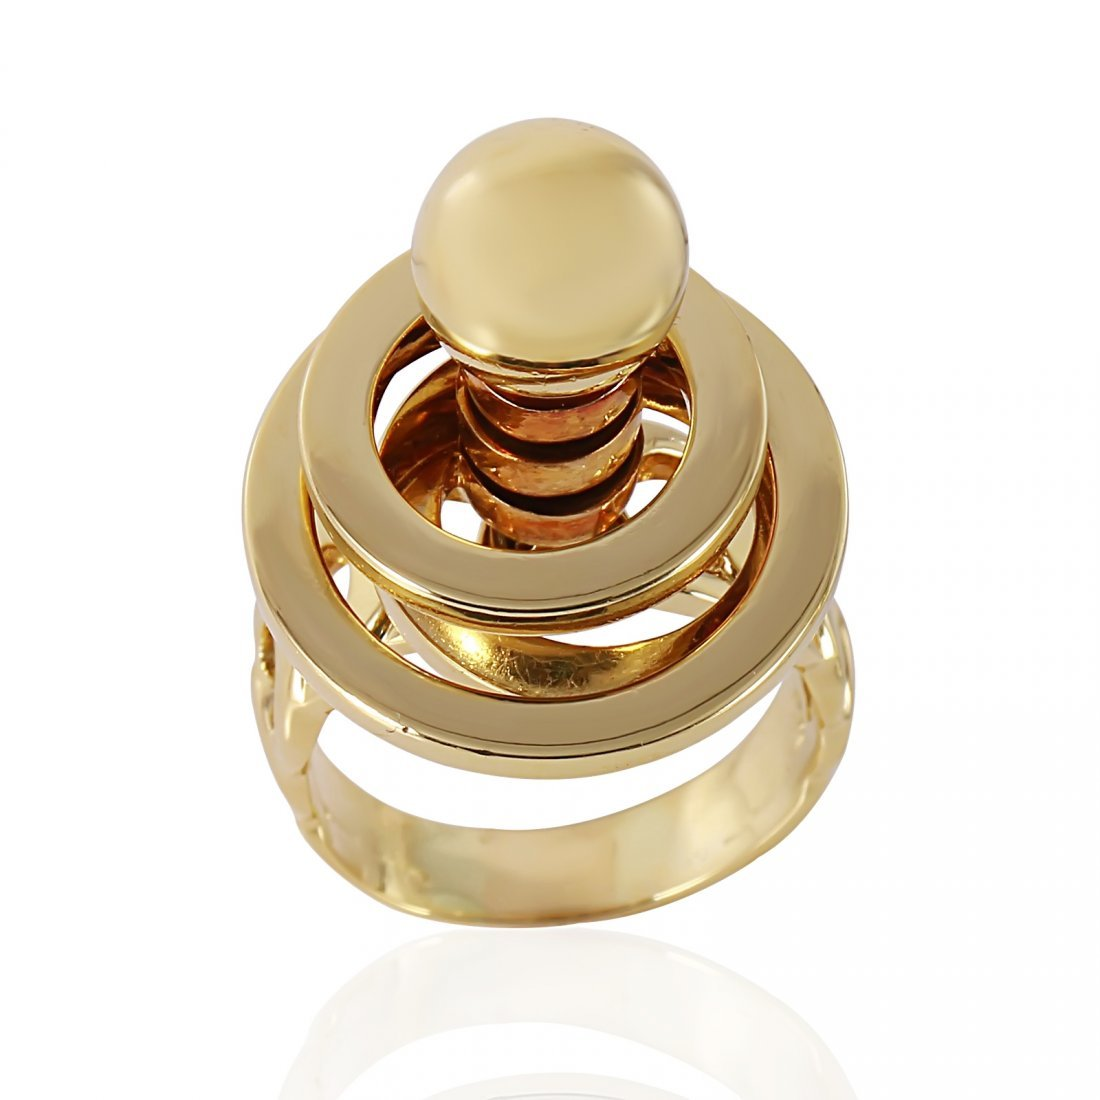 14KT Yellow Gold Spinning Ring